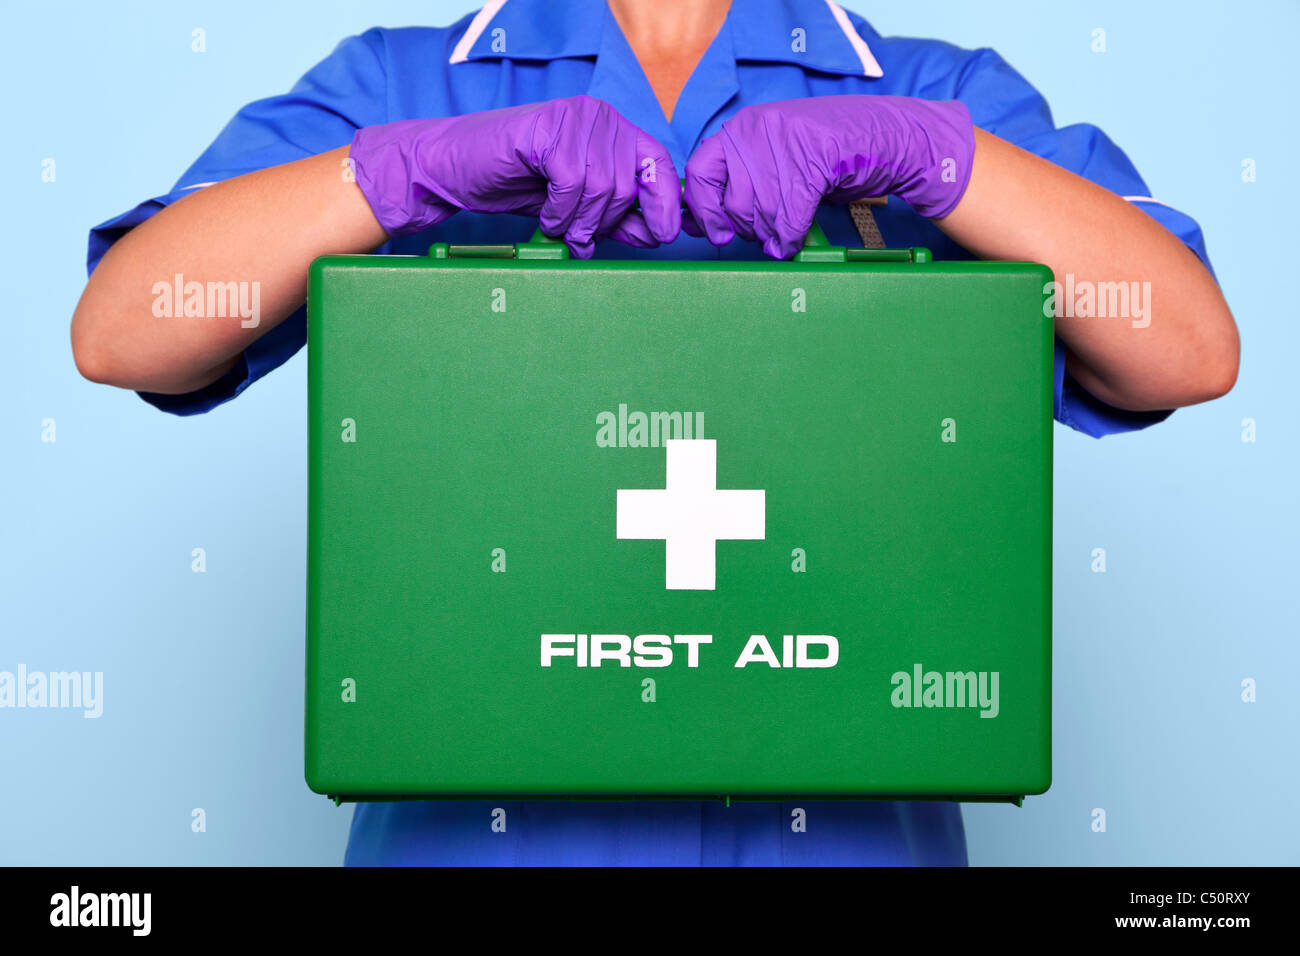 Photo of a nurse in uniform holding a green first aid kit. - Stock Image